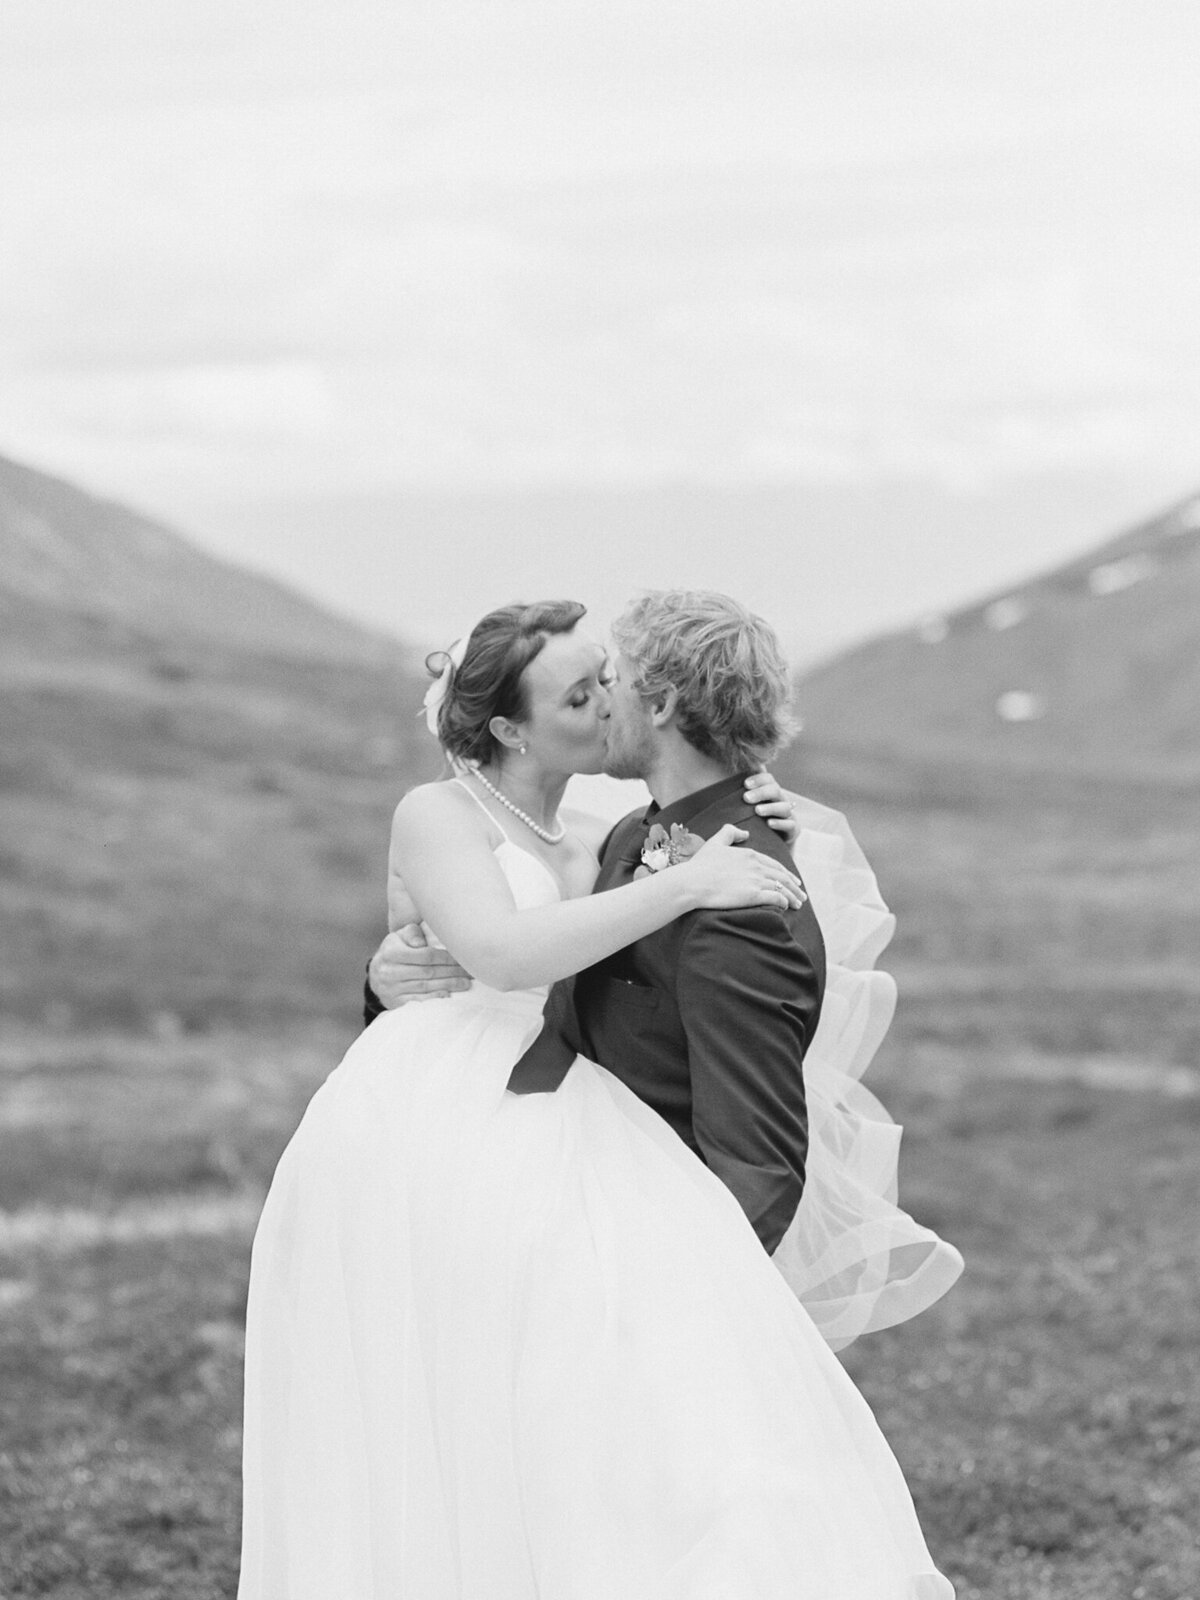 Hatcher Pass wedding